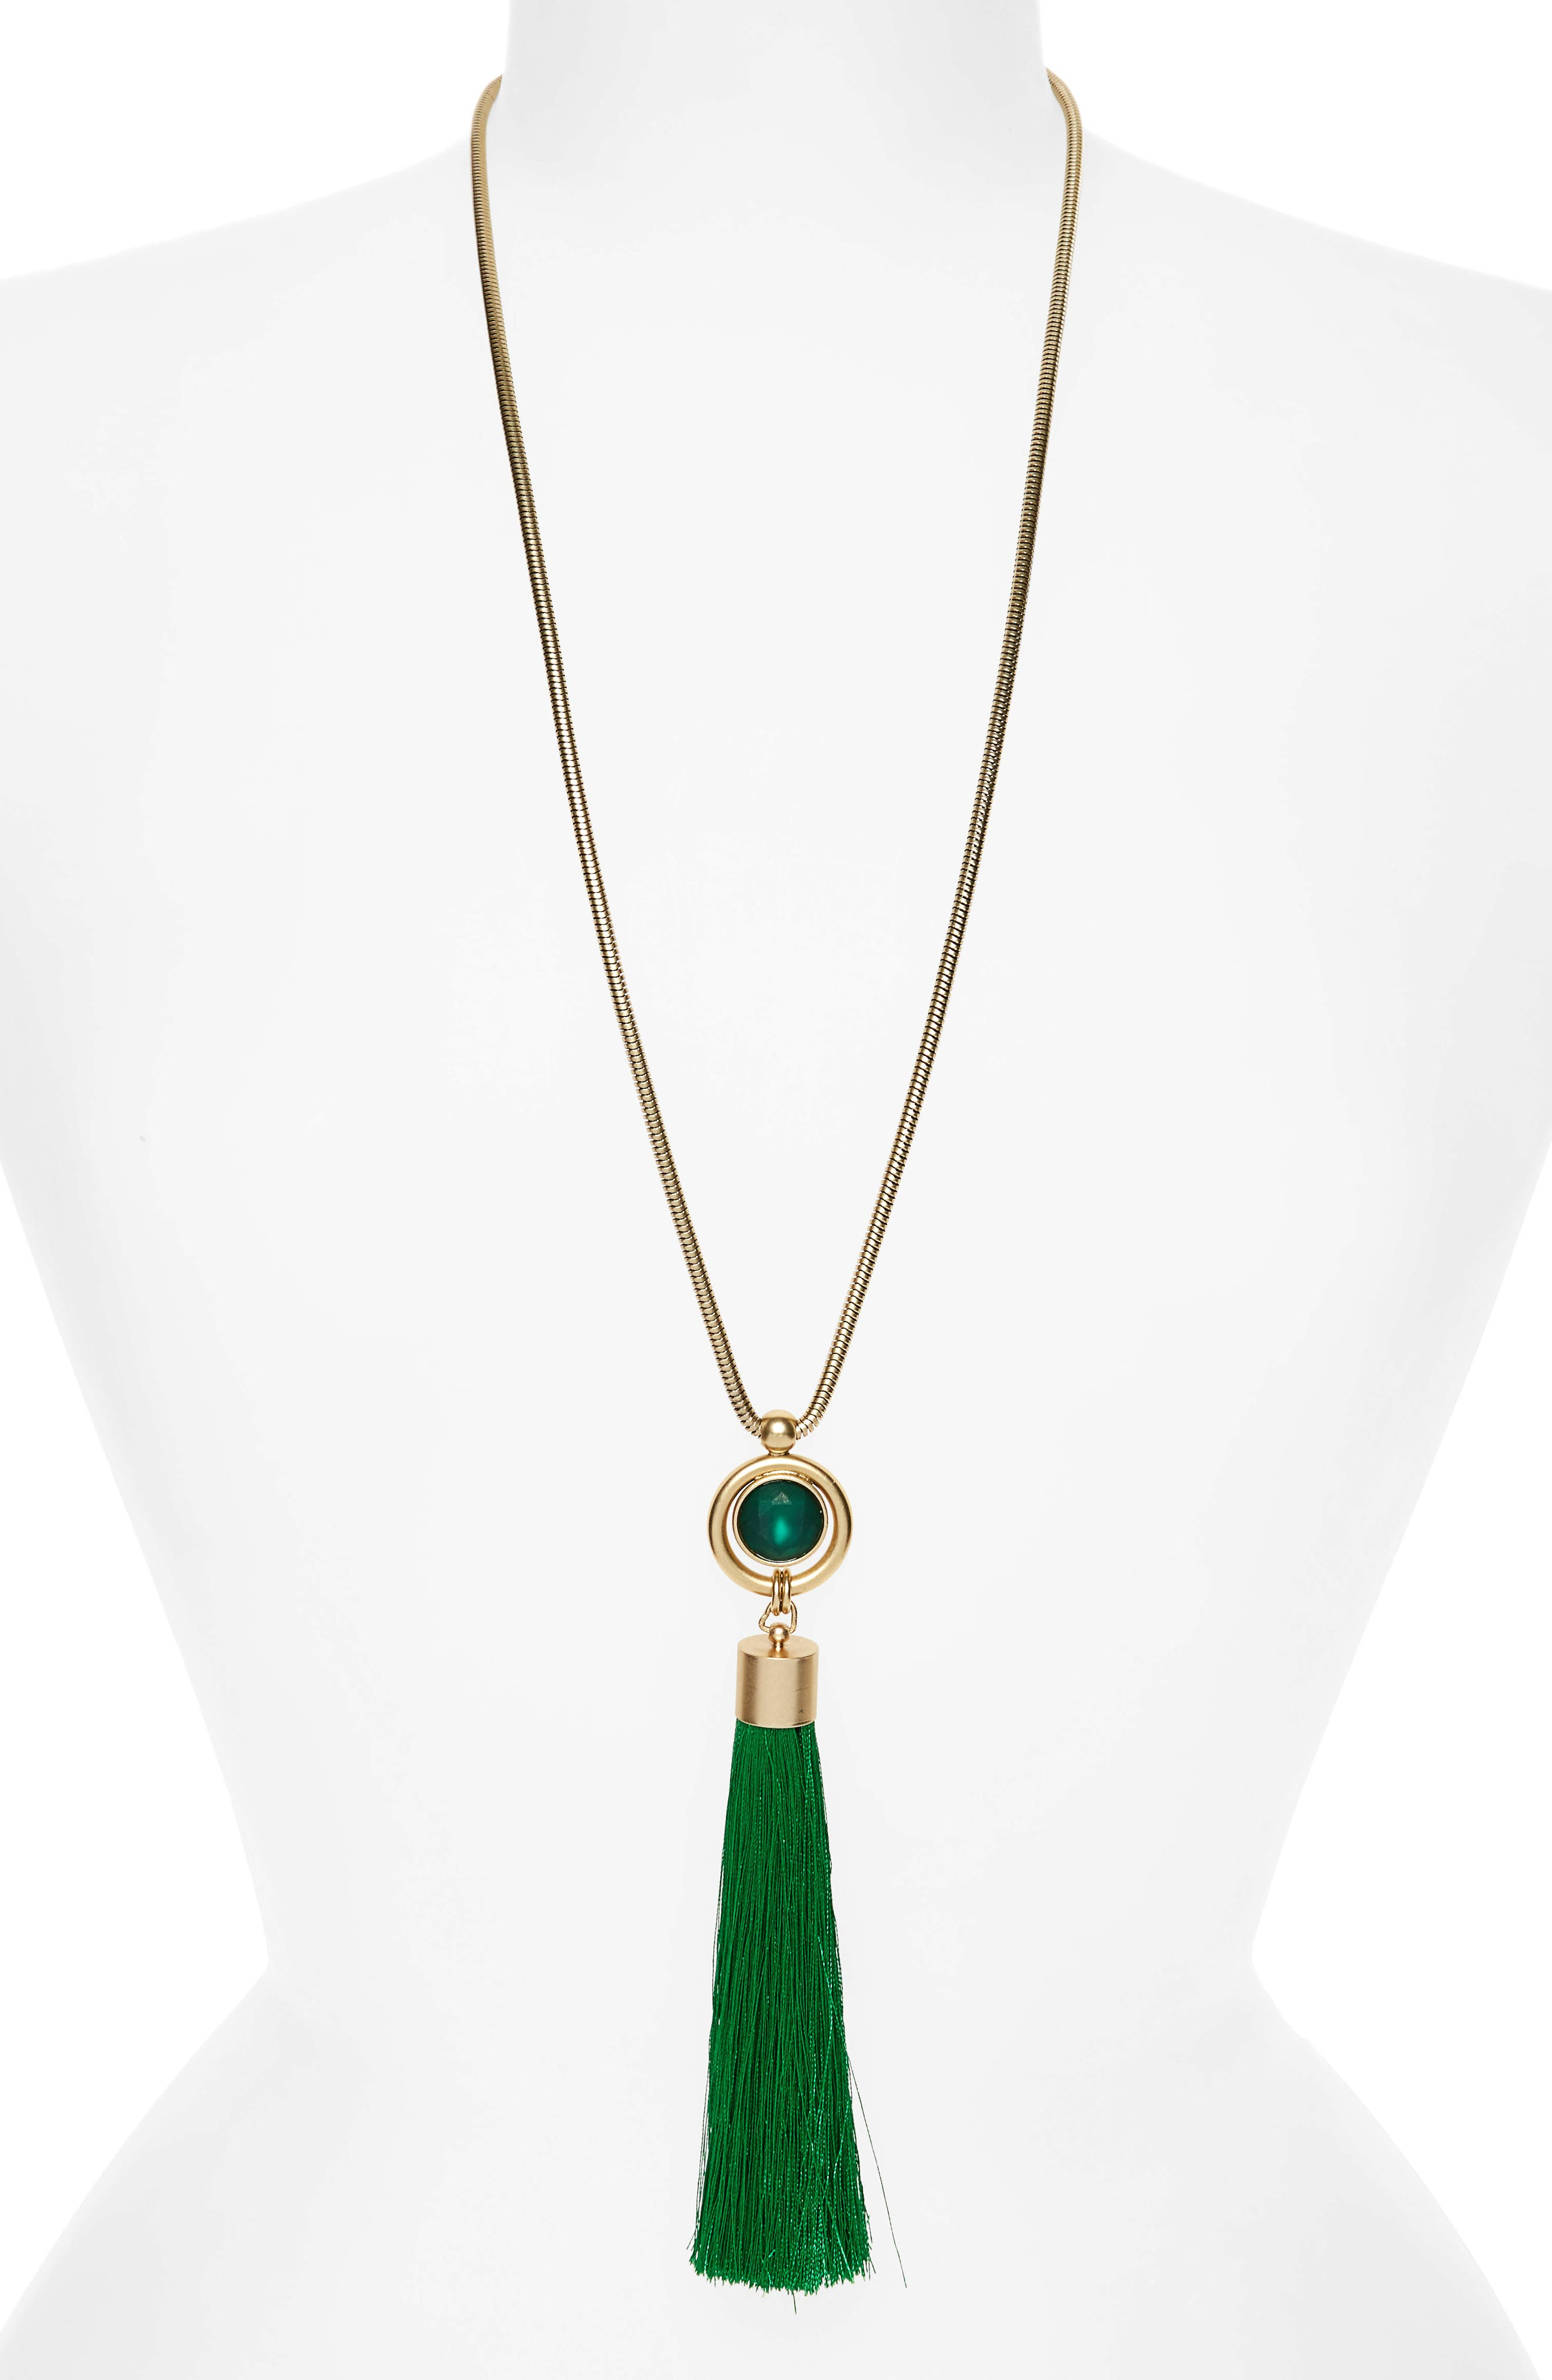 Loren Hope Scarlet Tassel Pendant Necklace